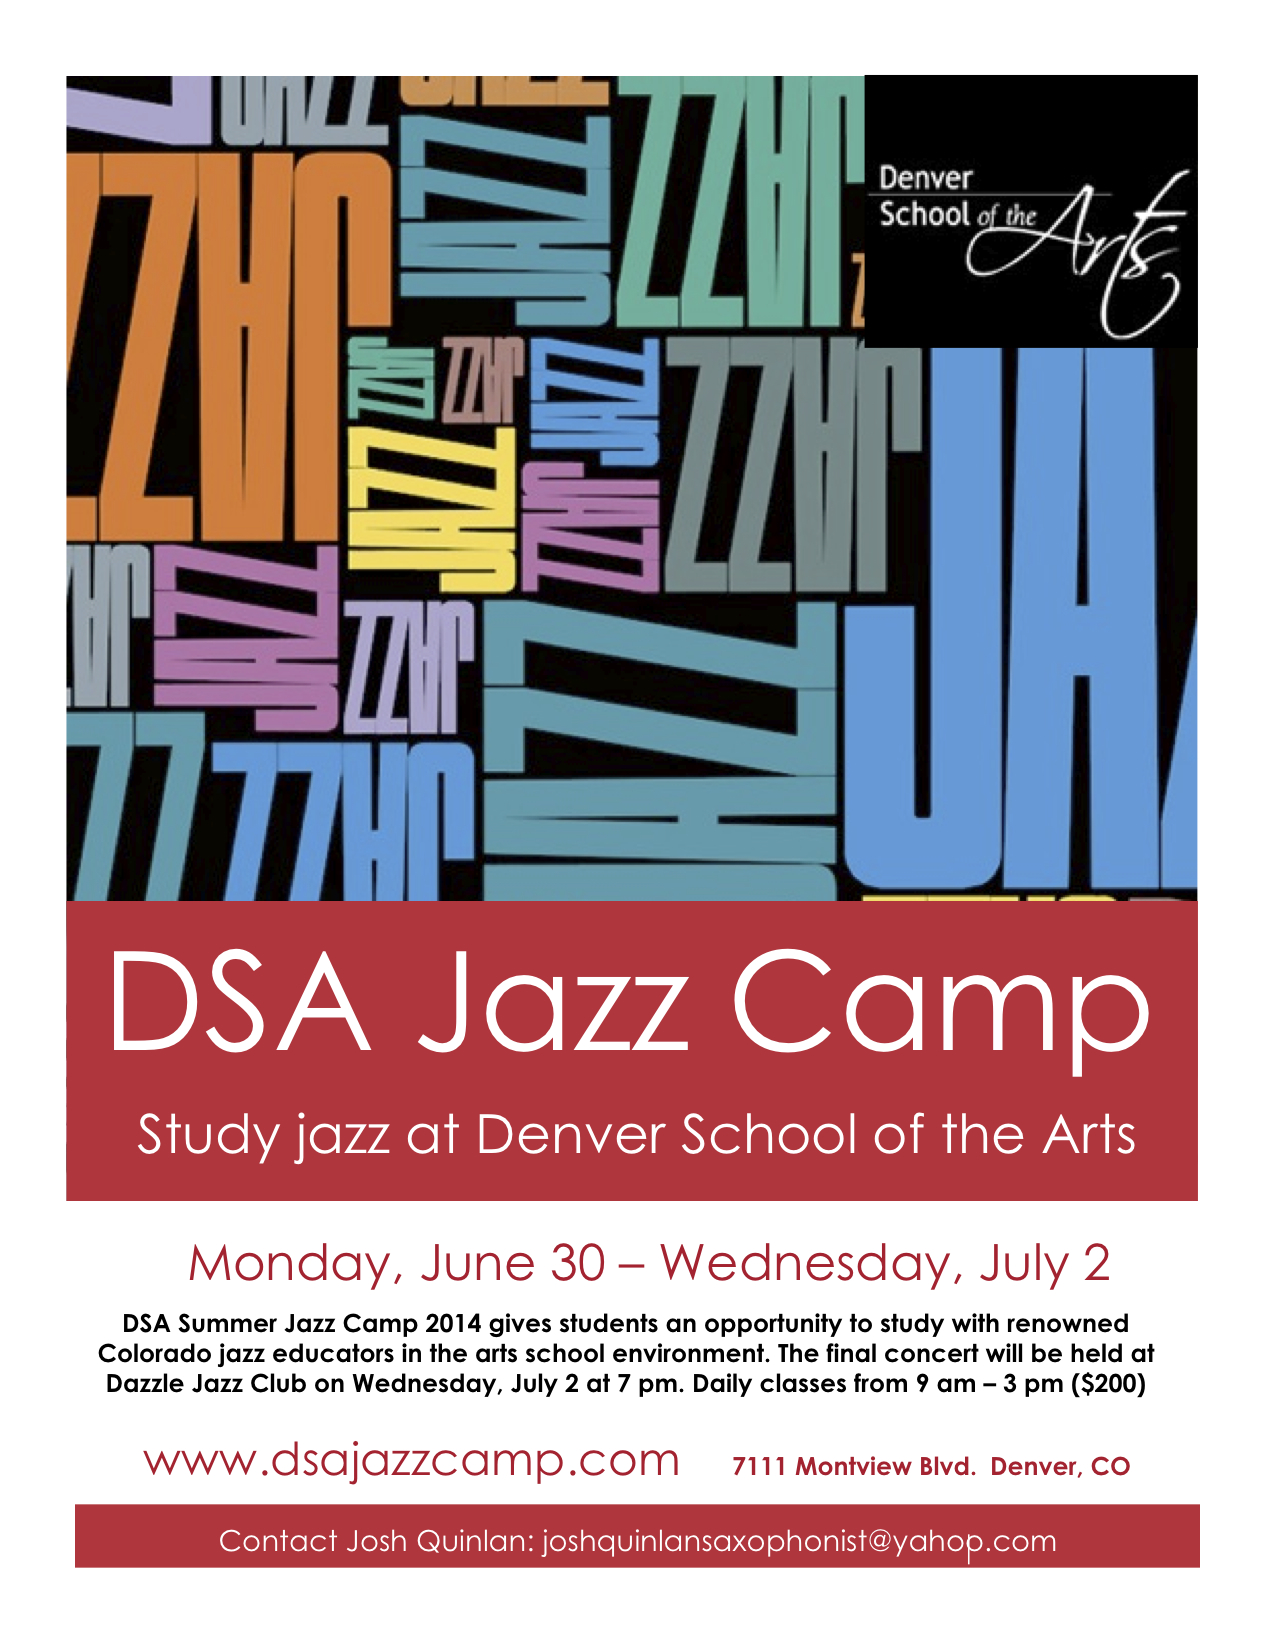 Jazz Camp Flyer Done Jpeg